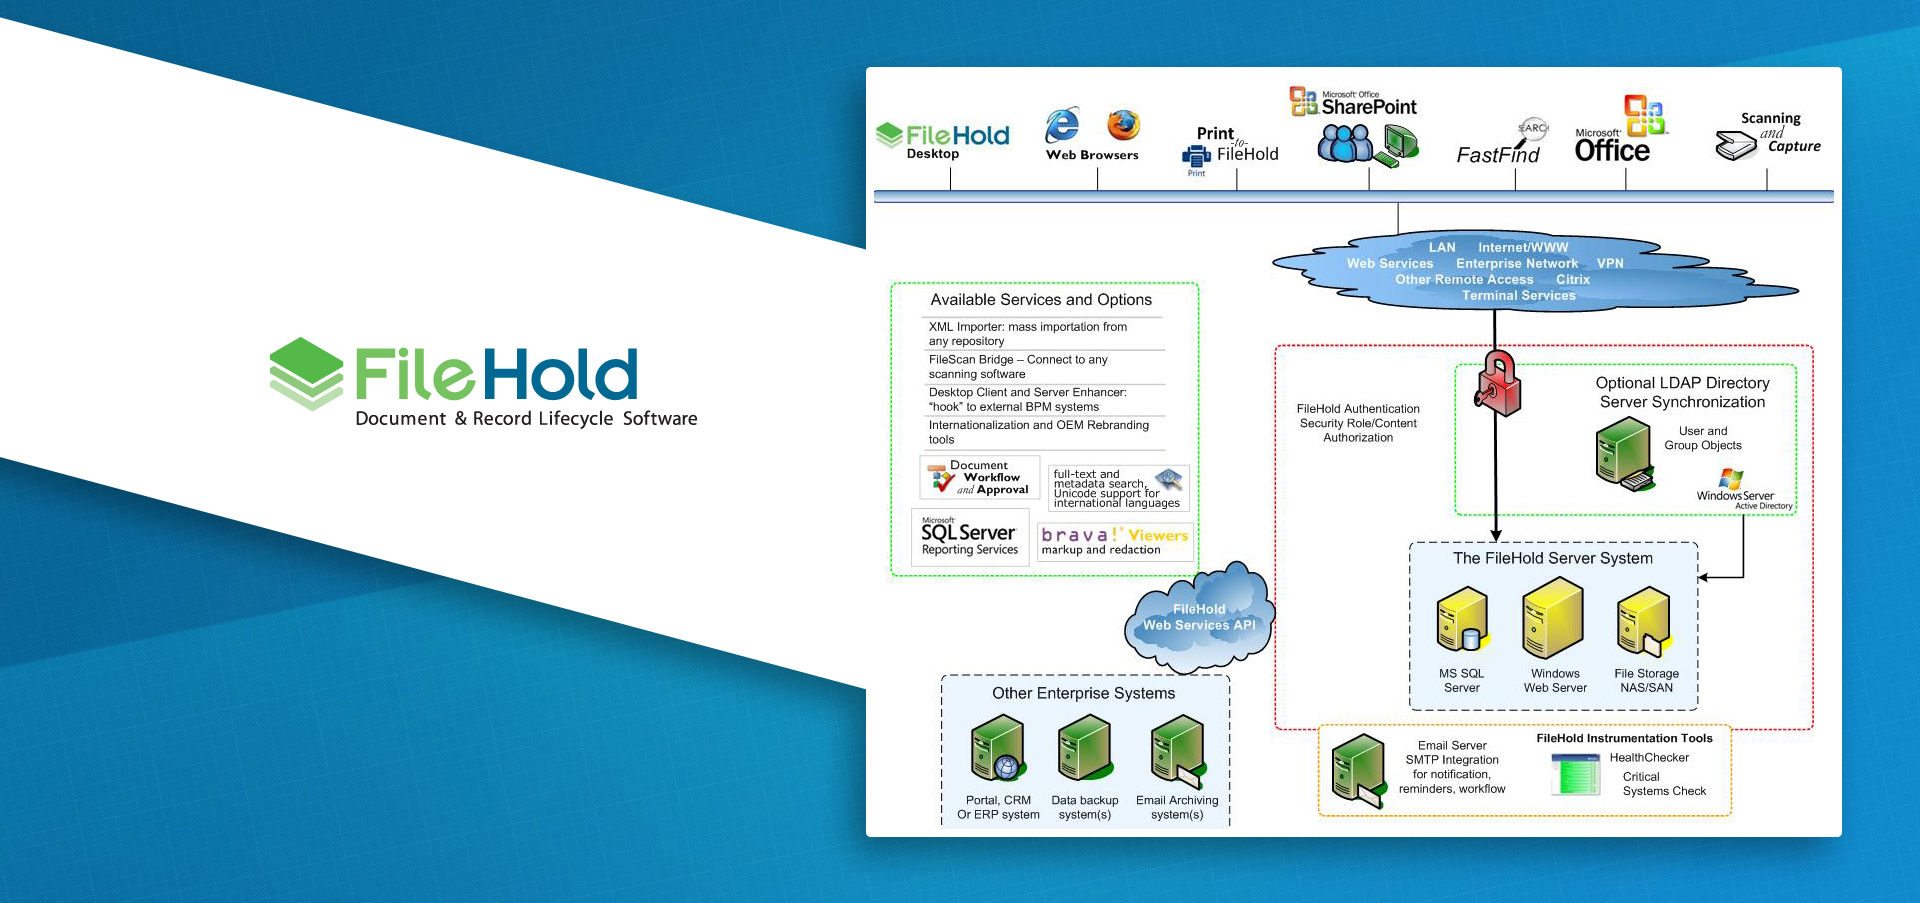 FileHold: Business Decisions for Competitive Document Management Solutions with DocuVieware